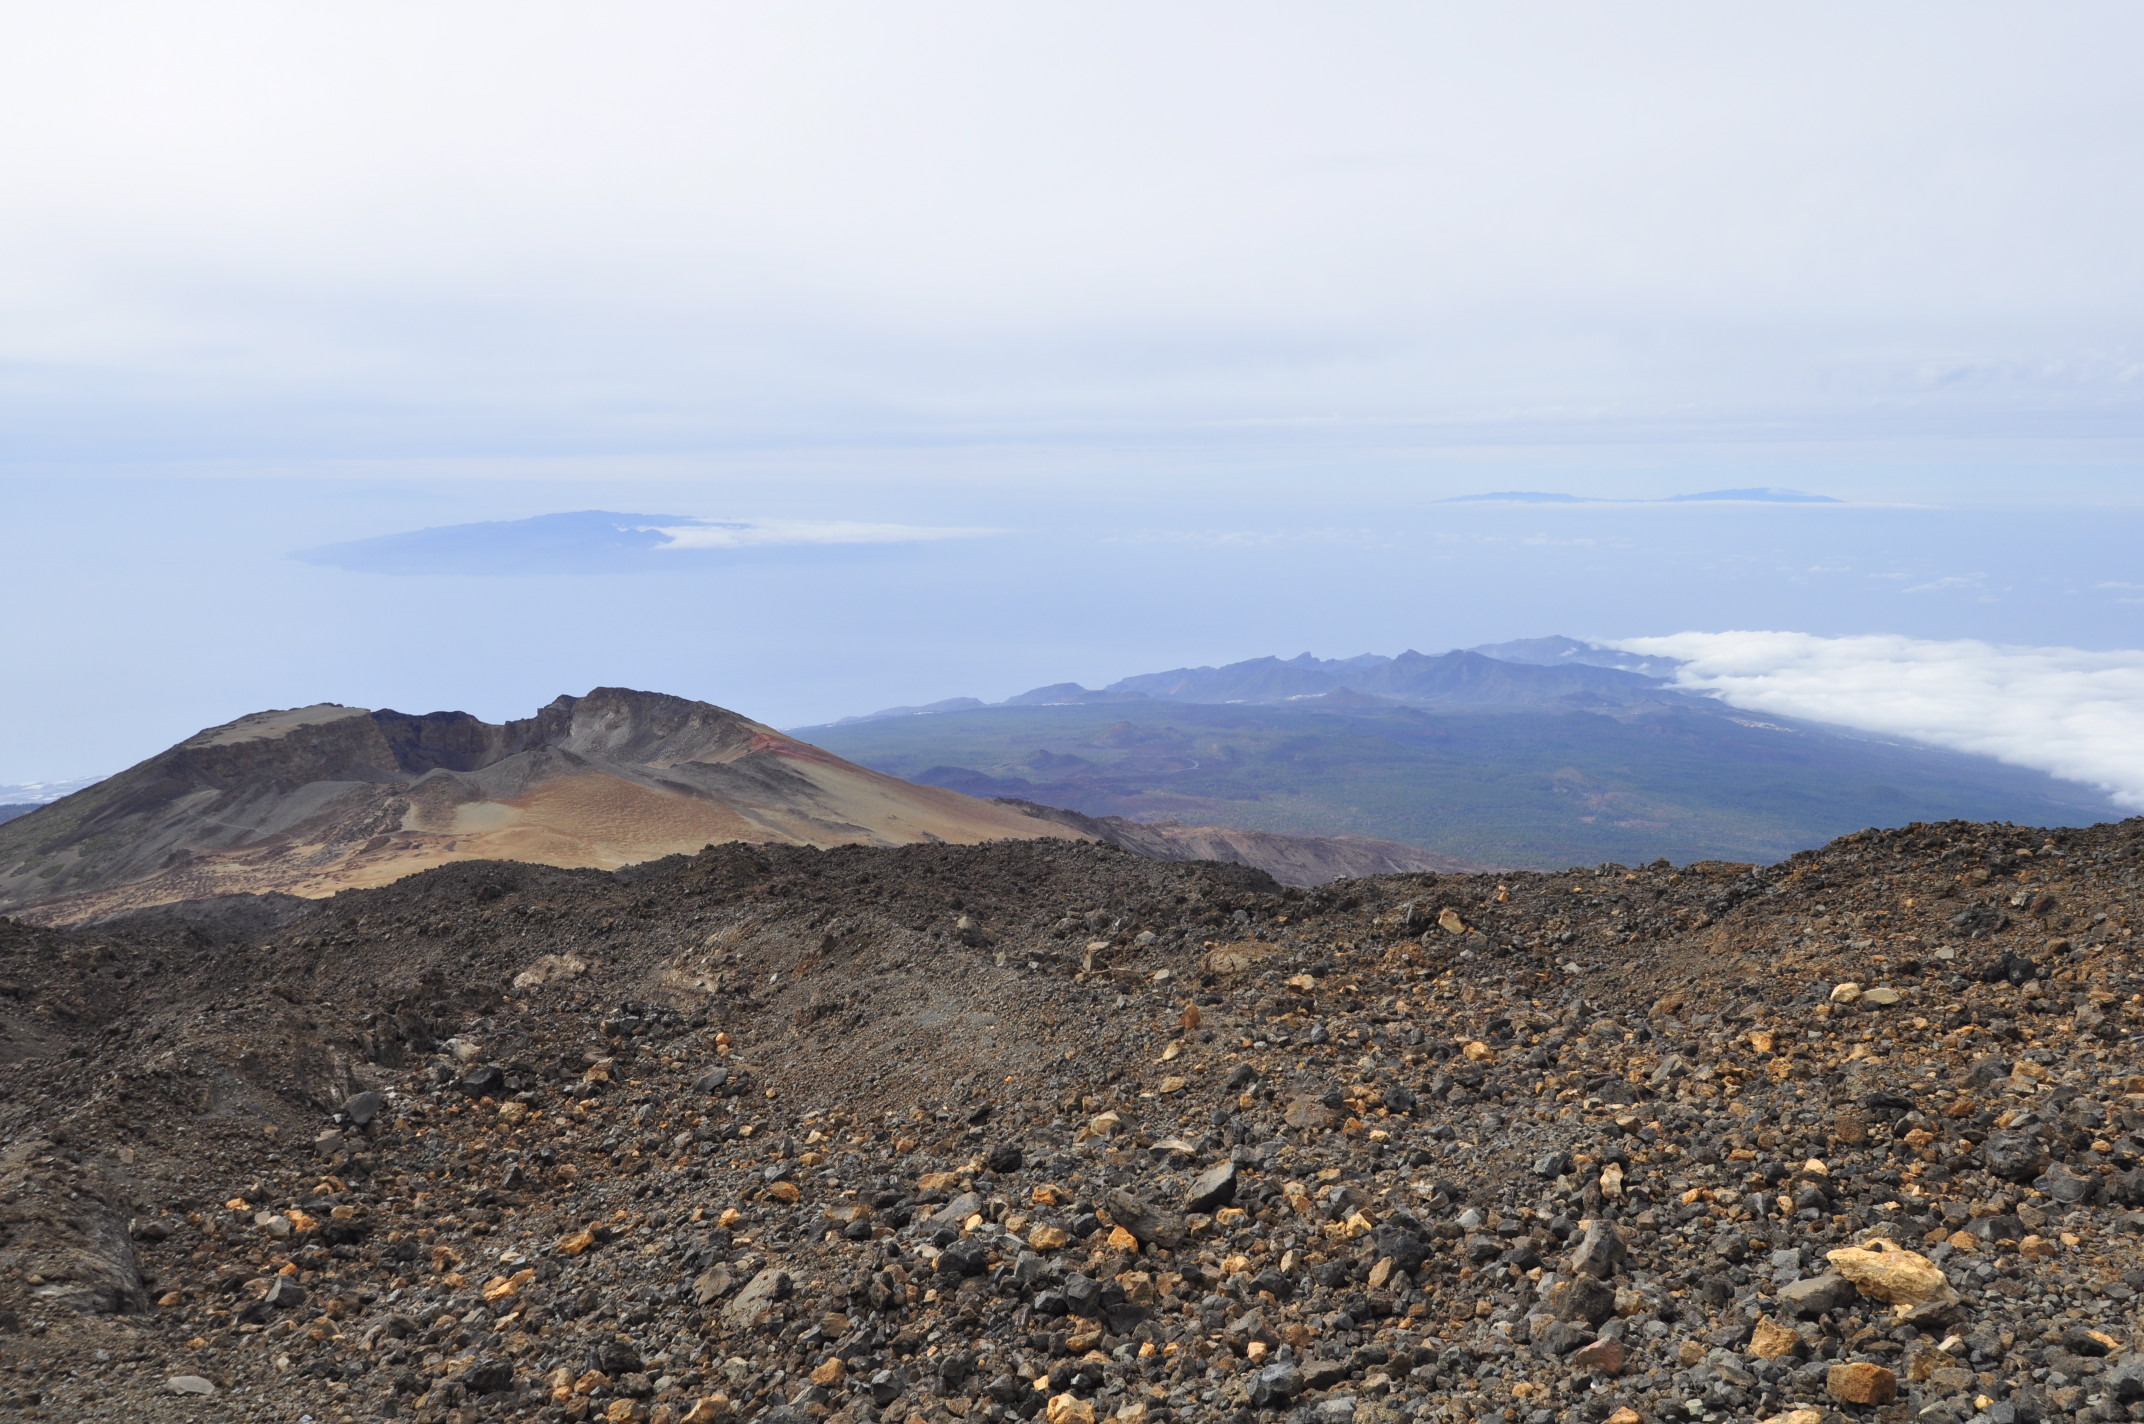 Looking down at La Gomera  and La Palma in the distance, from 3550 meters above the sea.